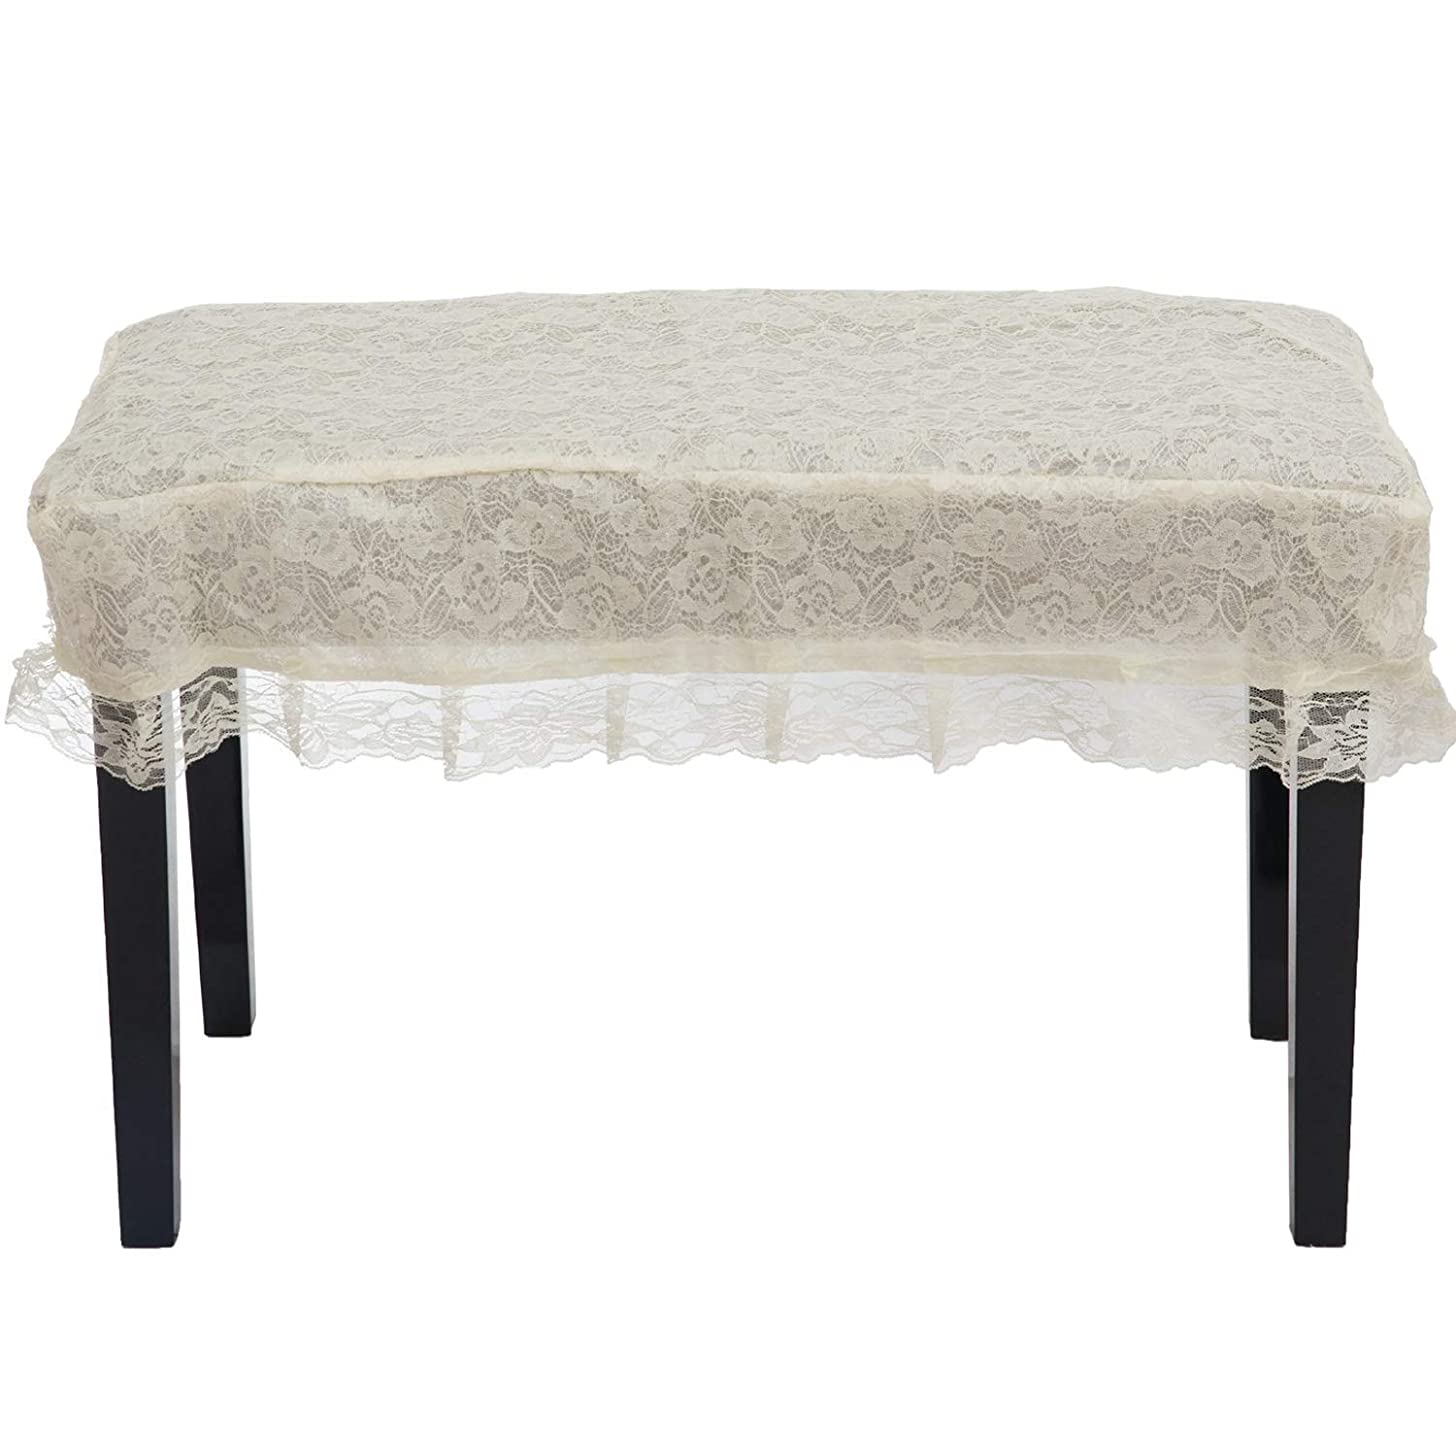 JOKHOO Universal Lace Piano Stool Chair Bench Cover (7636, White)